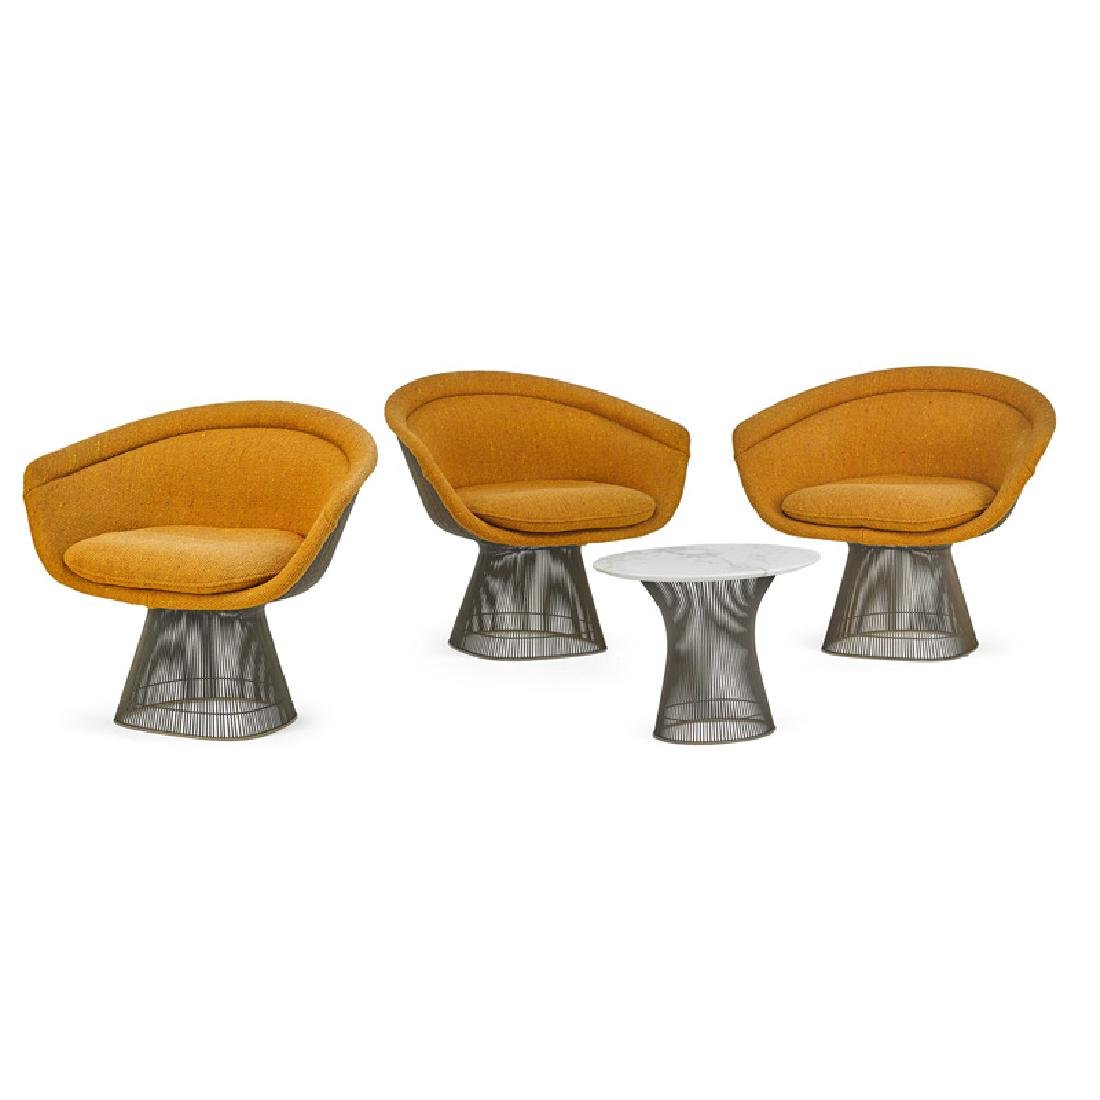 WARREN PLATNER Three armchairs and side table